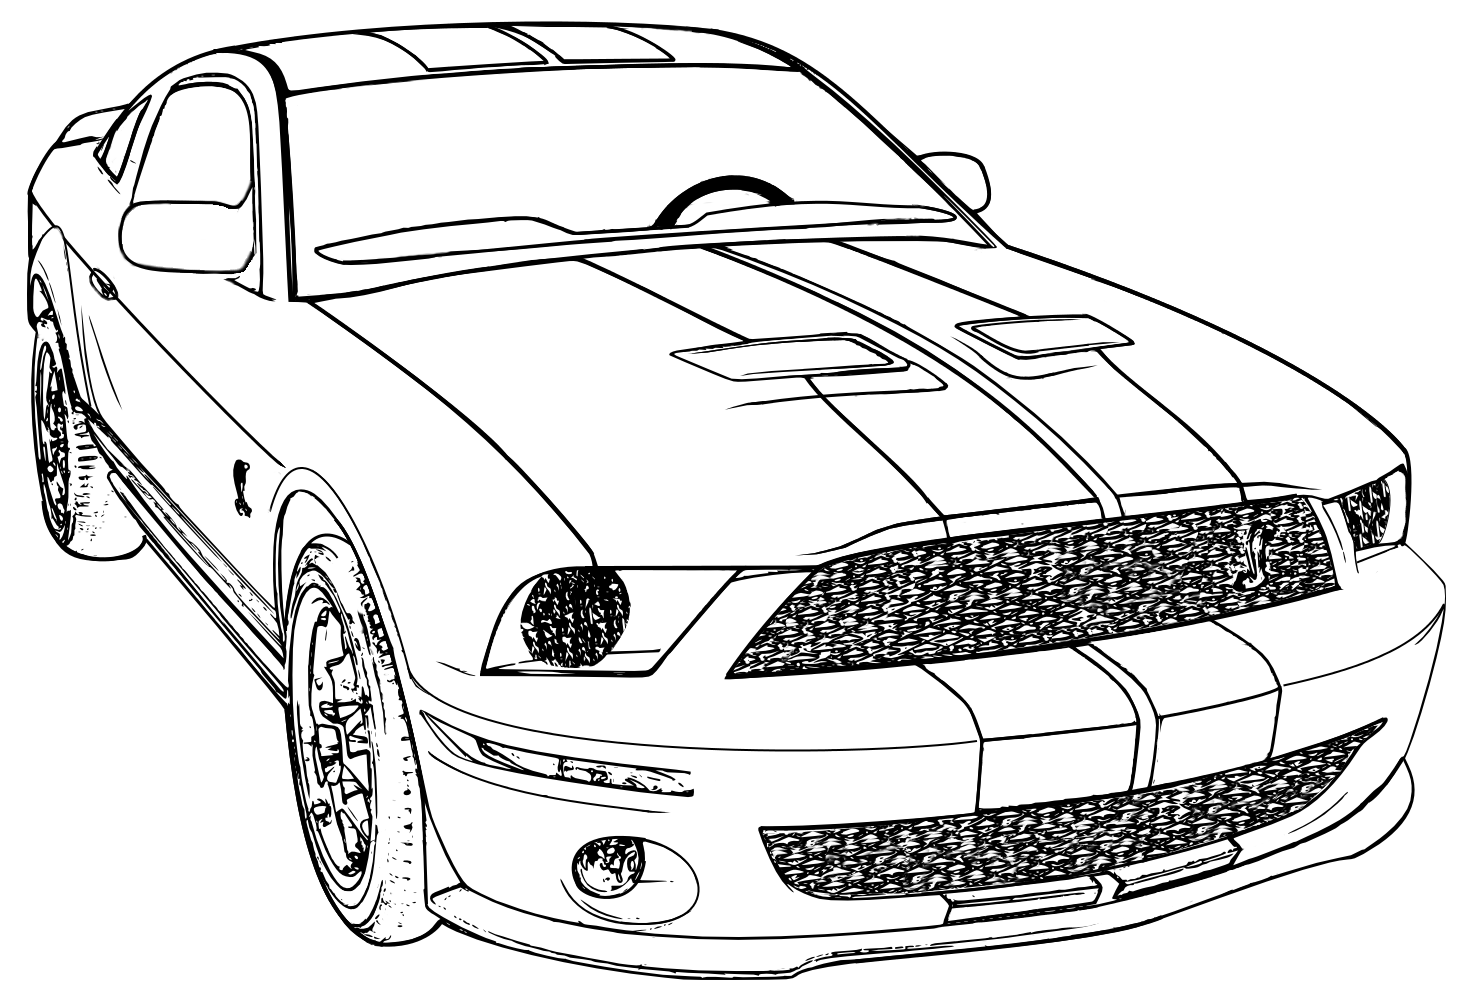 printable mustang car | car coloring page , ford mustang | MTB ...